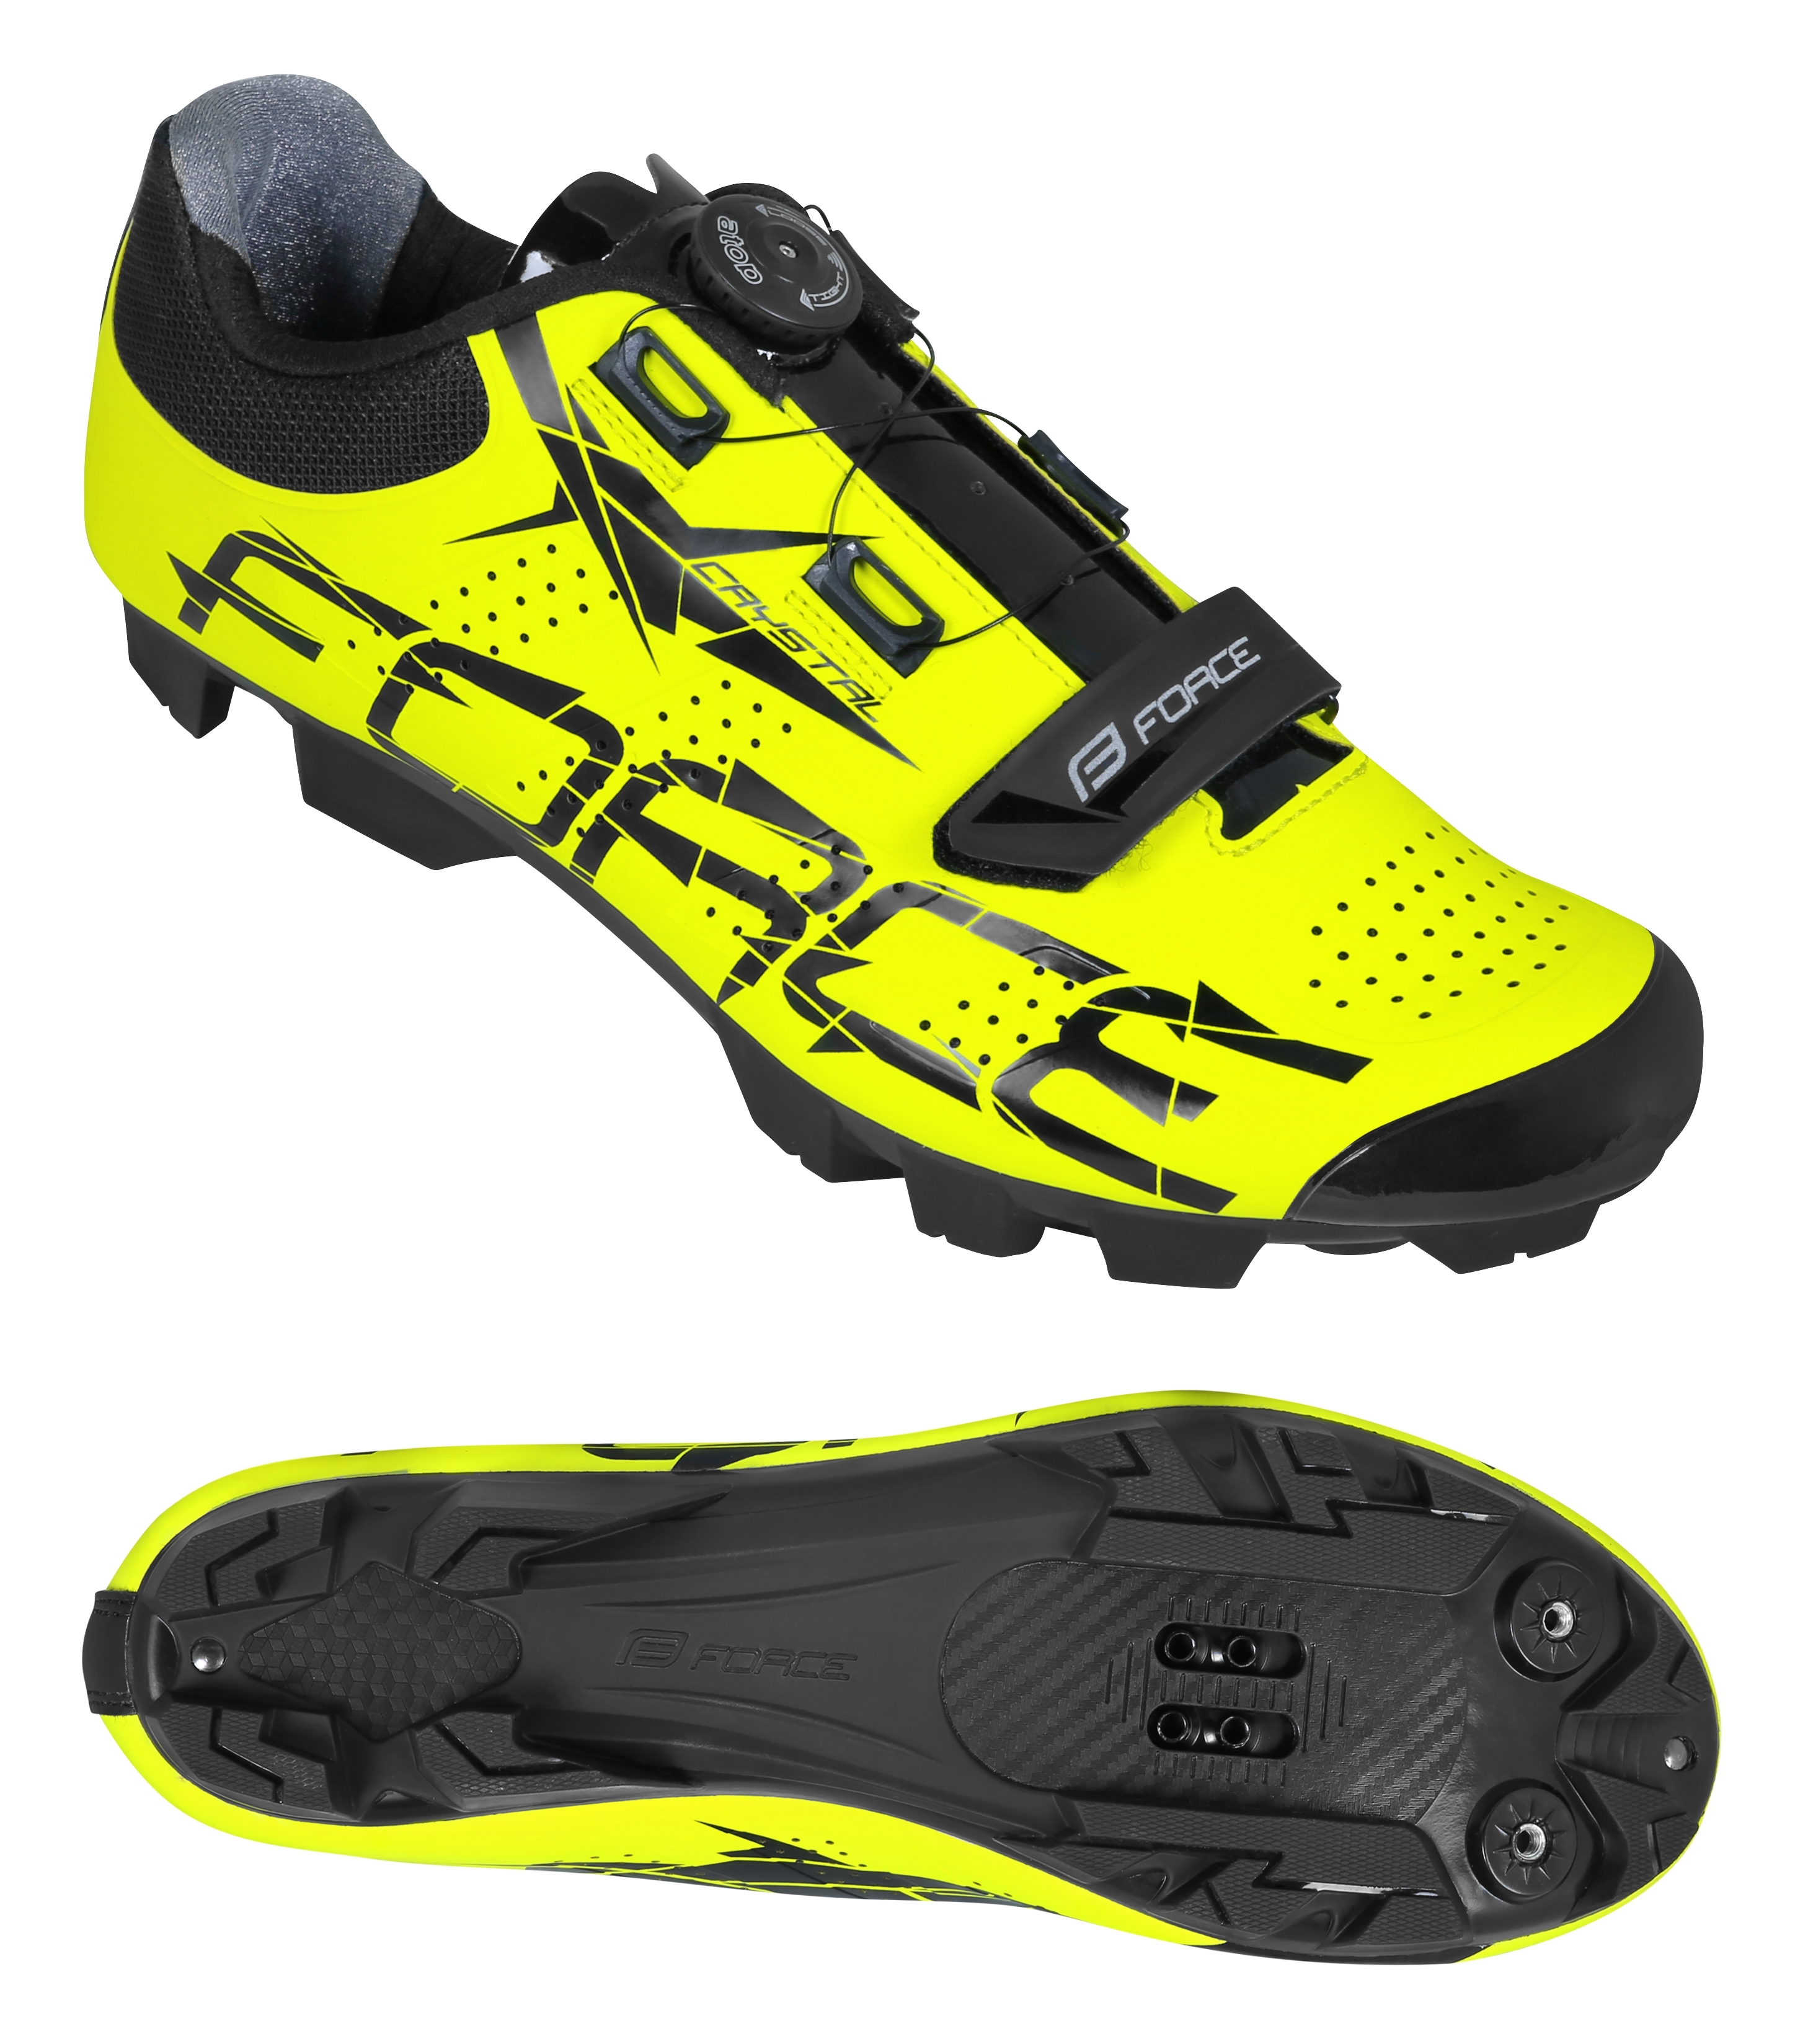 Tretry FORCE MTB CRYSTAL vel. 38, fluo